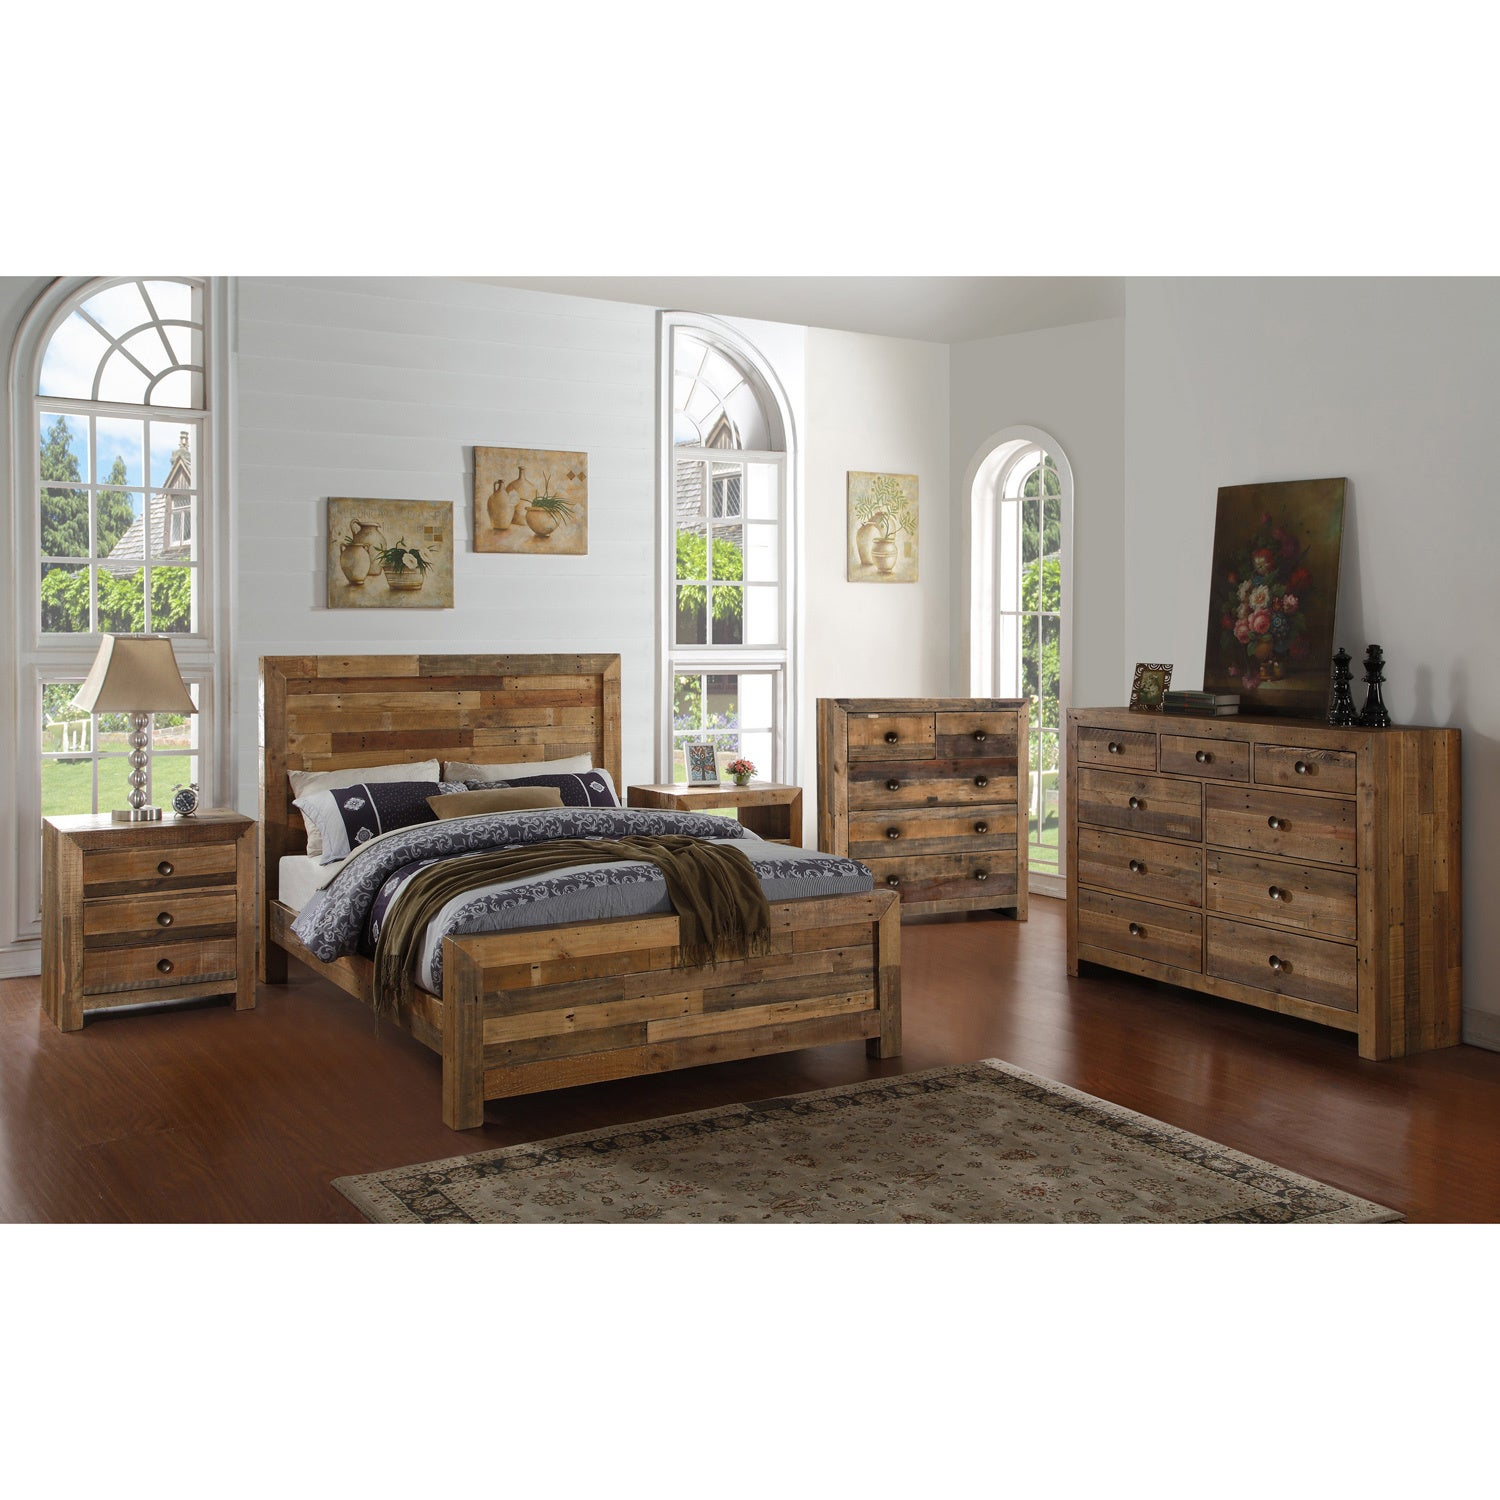 Shop The Gray Barn Windswept Reclaimed Wood Bed   On Sale   Free Shipping  Today   Overstock.com   19856453